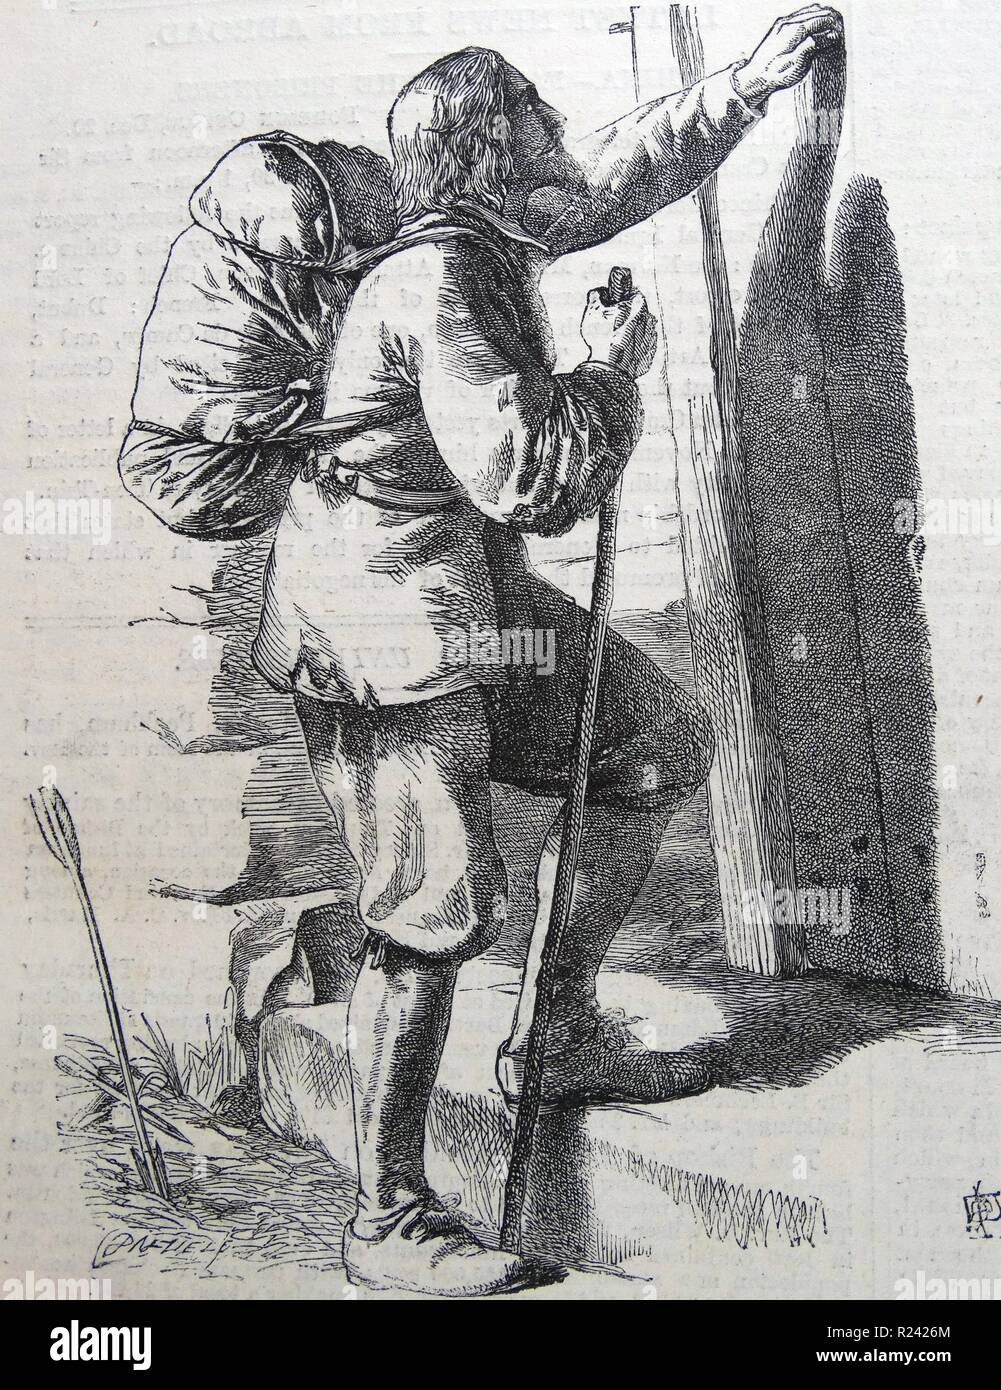 Engraving depicting a Christian knocking on a Gate. Taken from the 'Pilgrim's Progress'. Dated 1860 - Stock Image